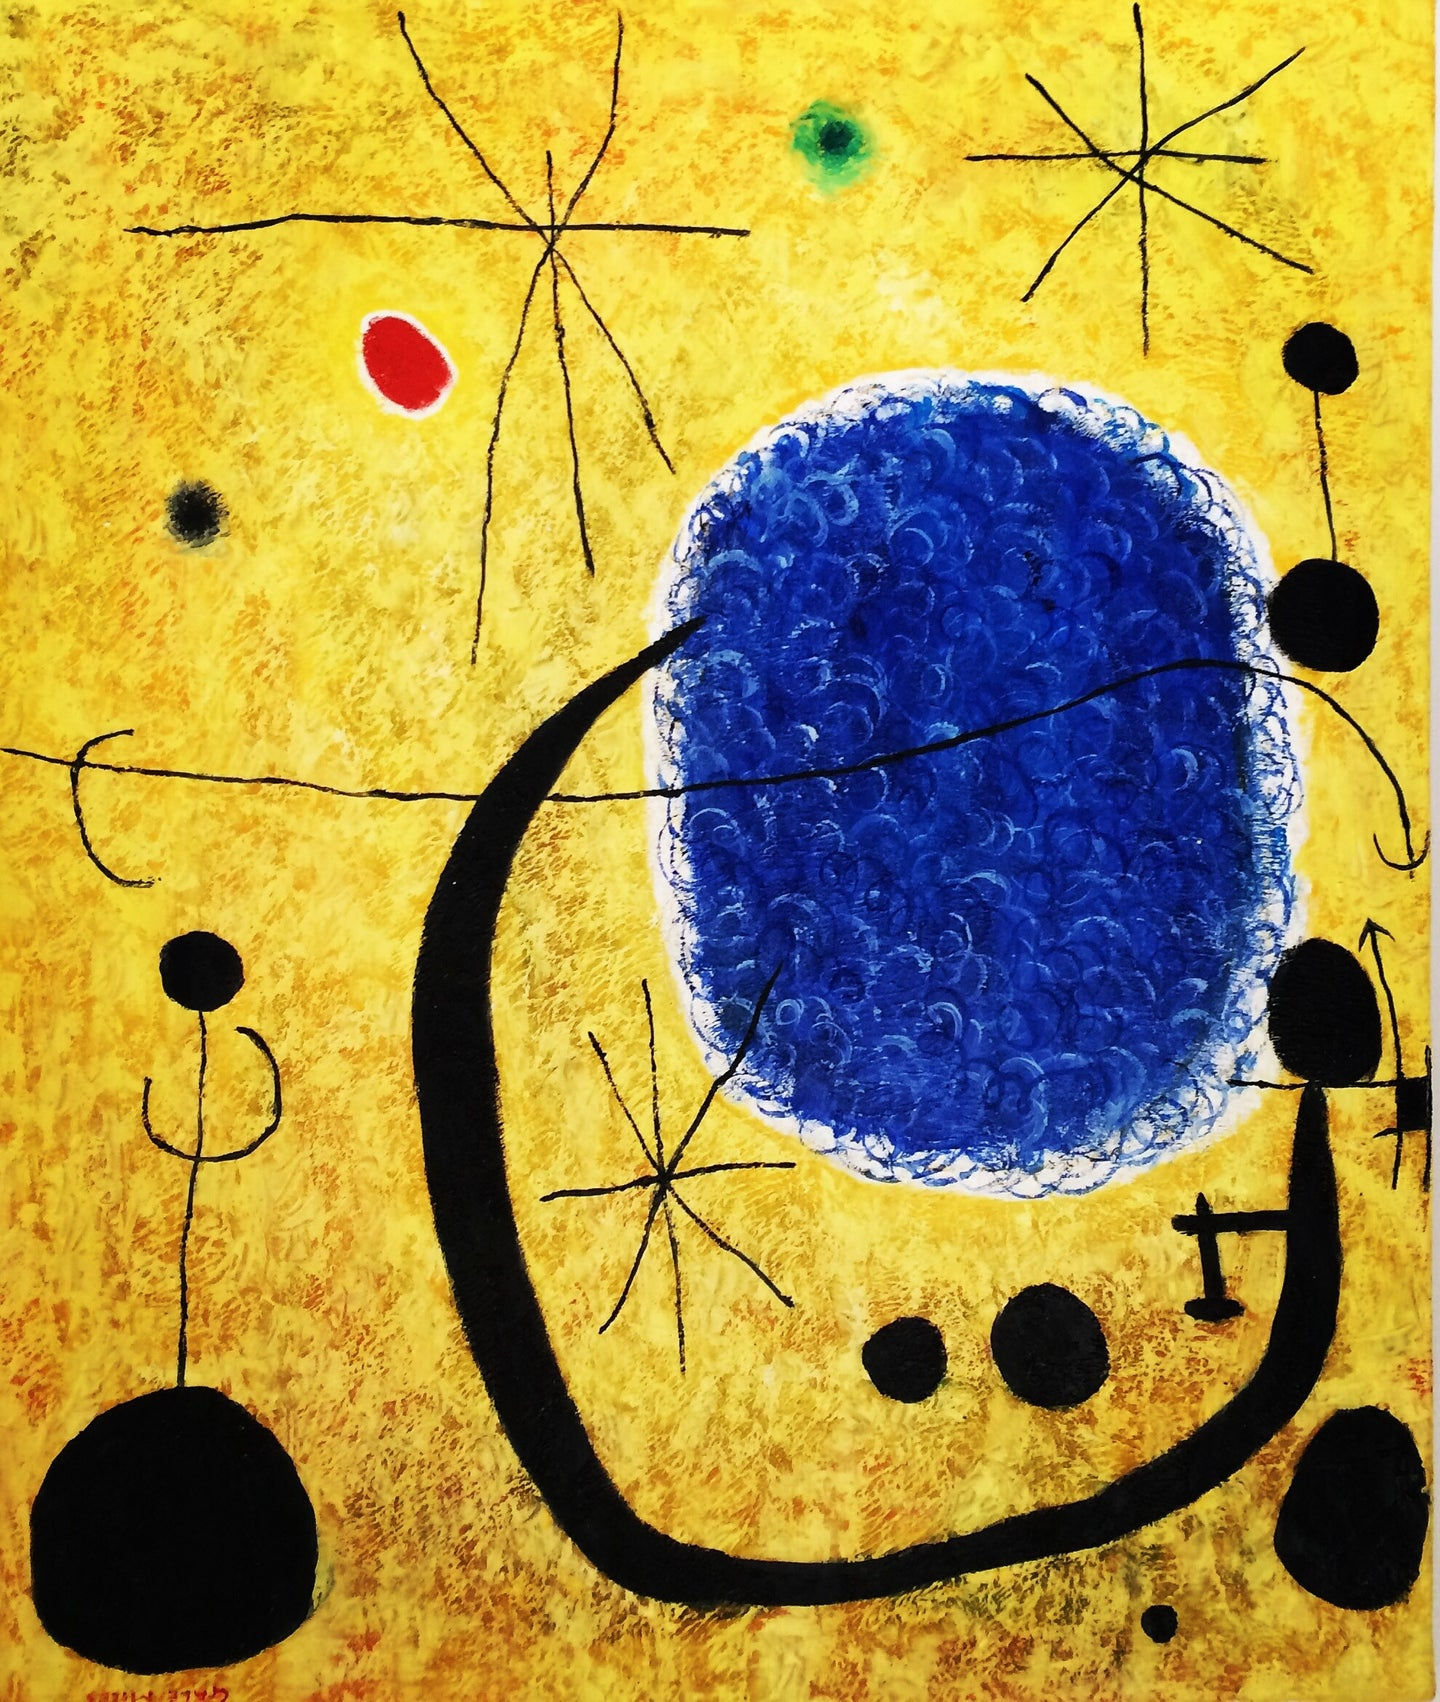 Acrylic on Canvas Painting Signed Gale Miers after Joan Miro